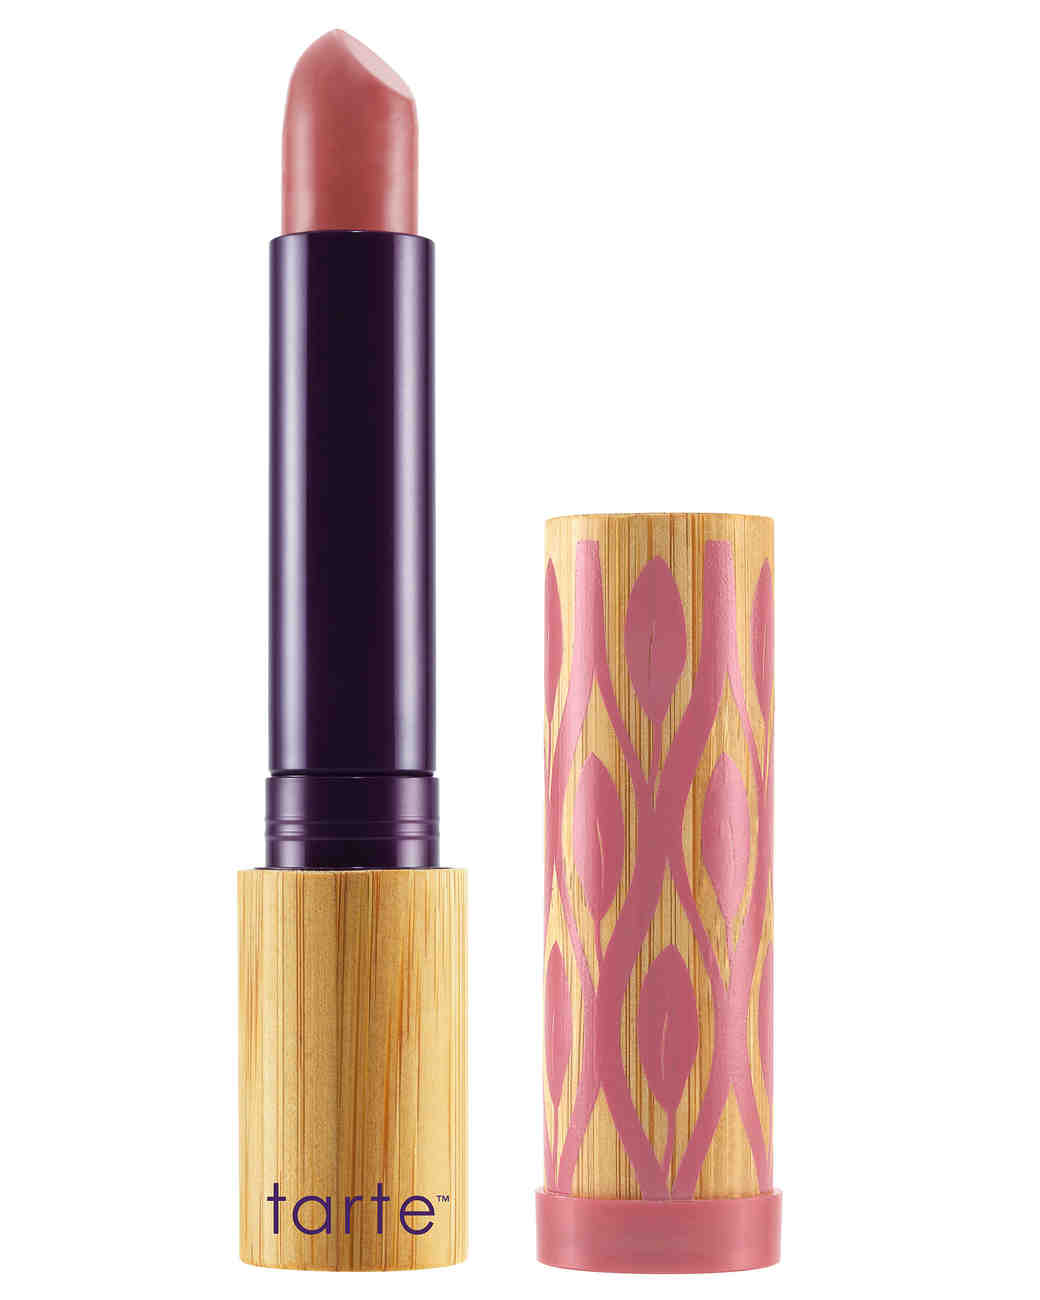 tarte-glamazon-pure-performance-lipstick-pure-0314.jpg